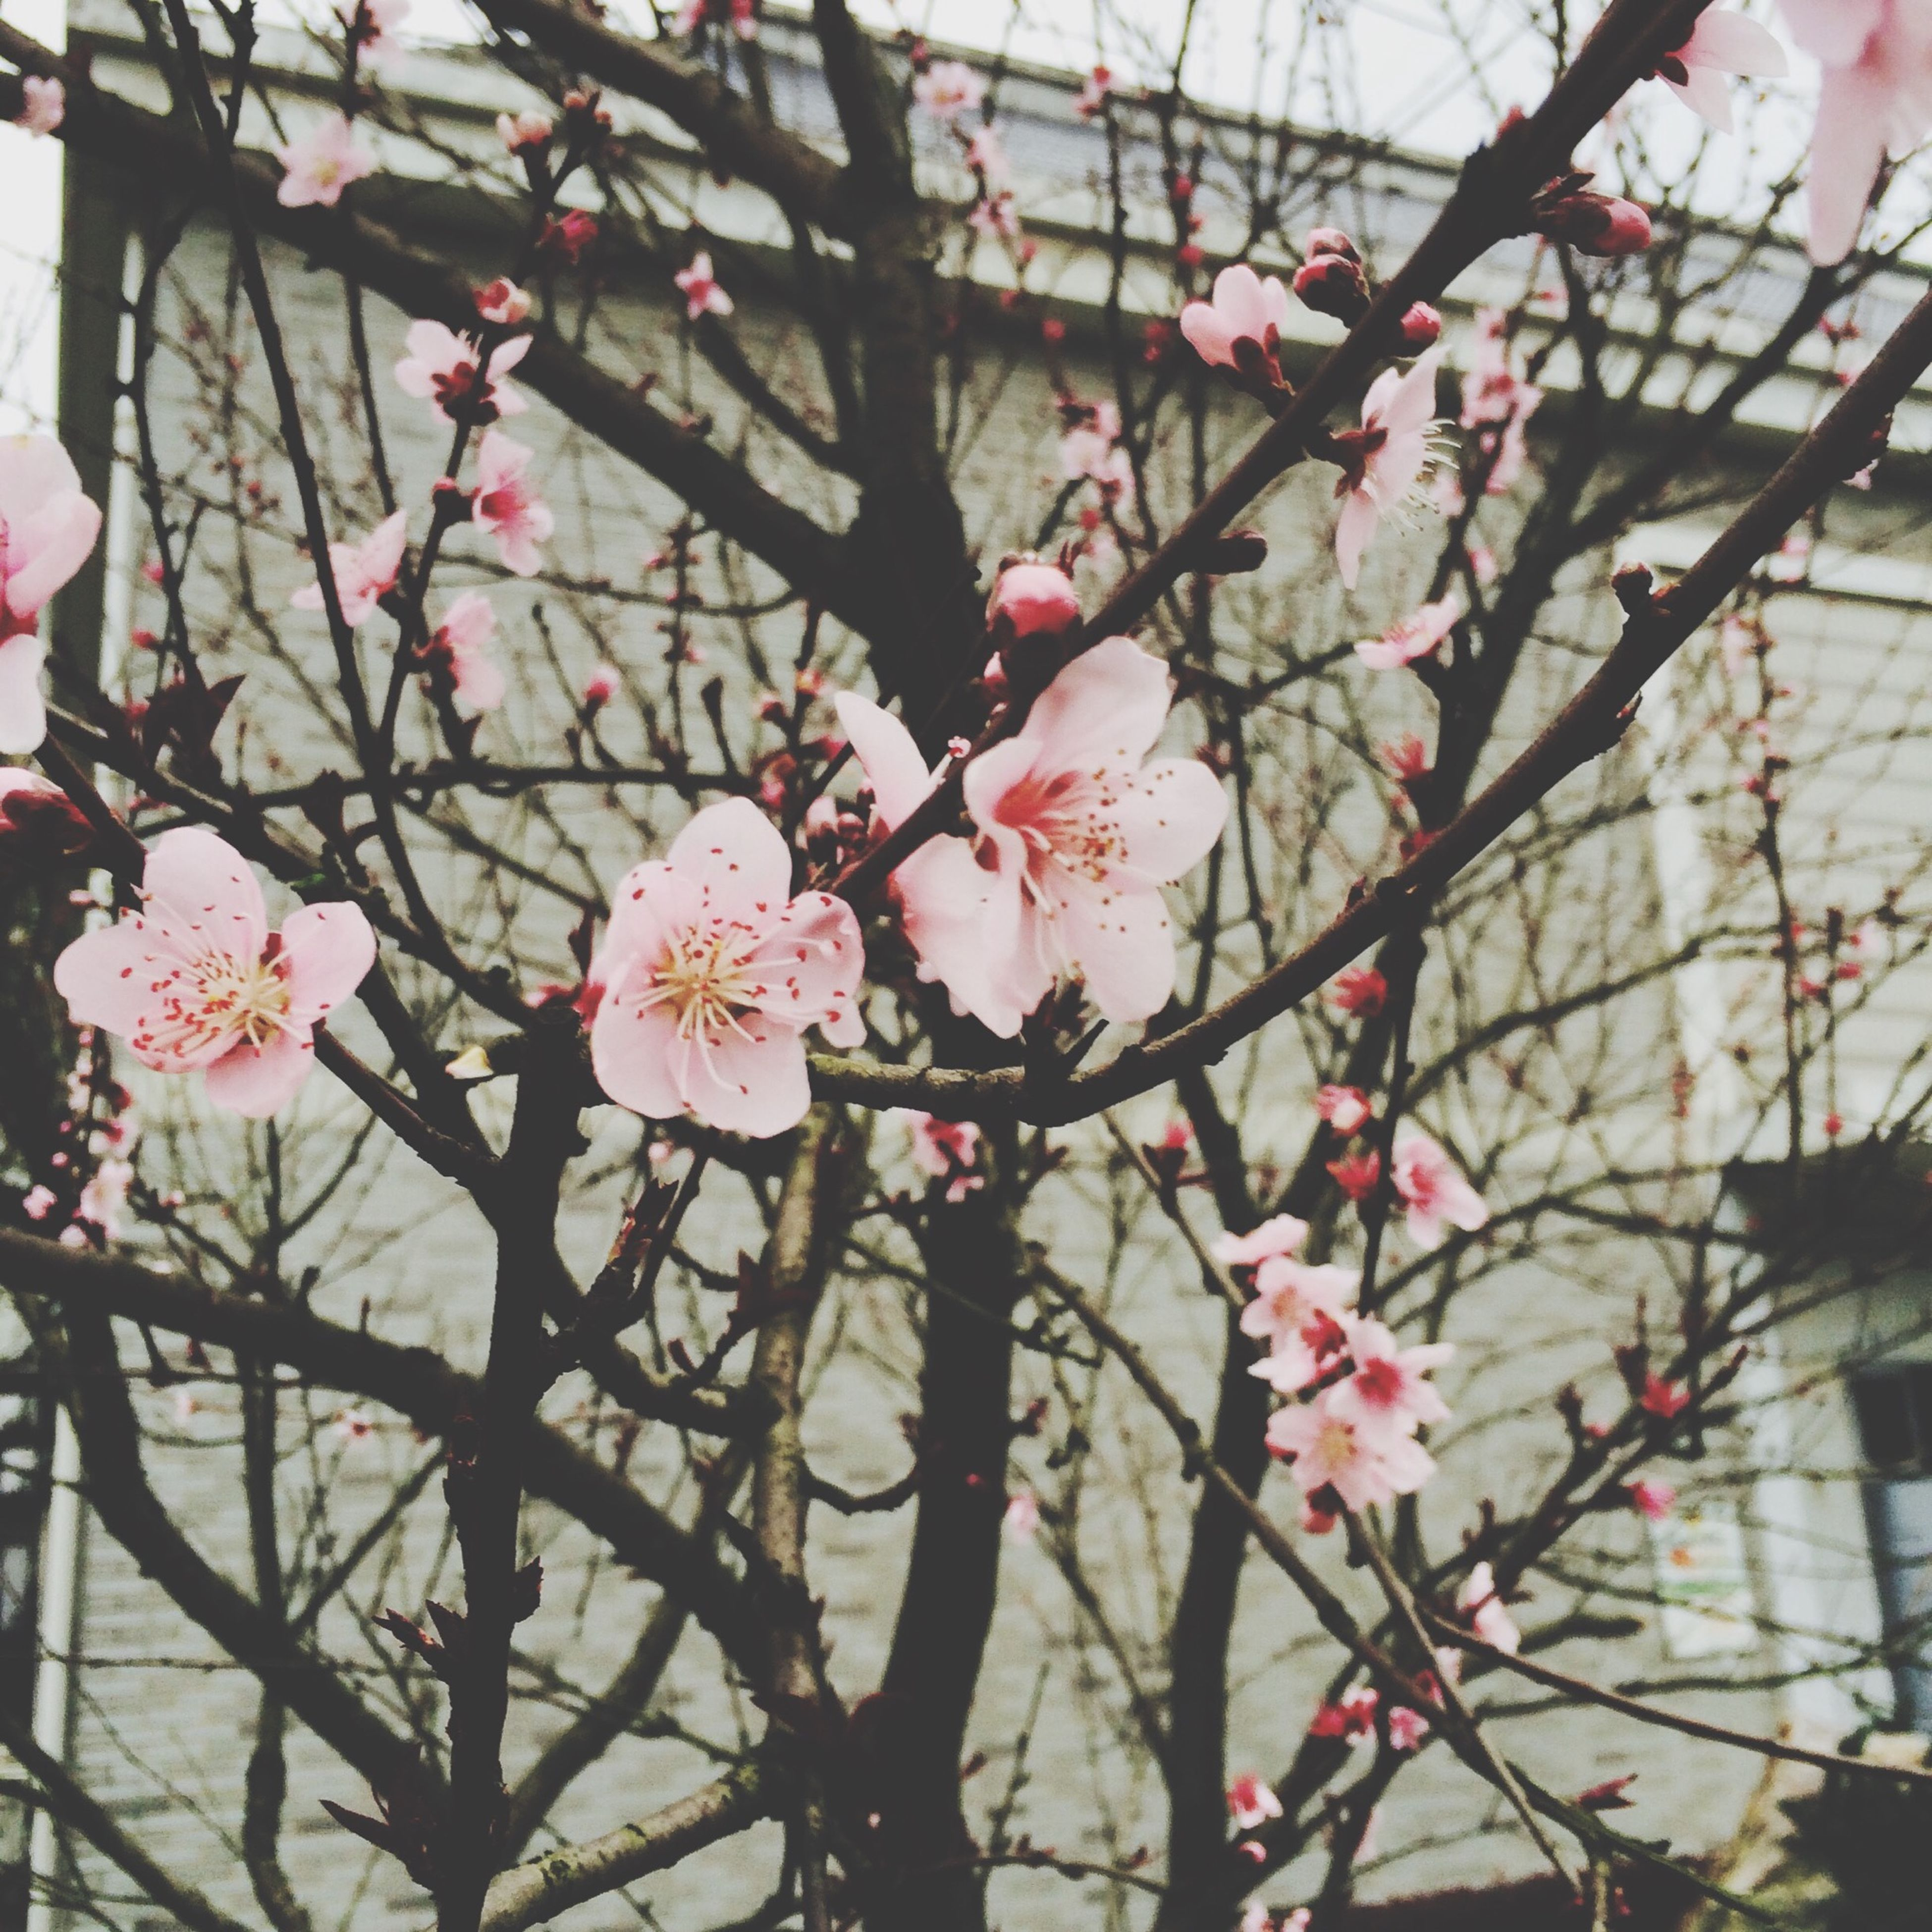 flower, branch, freshness, fragility, tree, growth, low angle view, blossom, pink color, cherry blossom, nature, beauty in nature, cherry tree, petal, in bloom, blooming, twig, springtime, built structure, fruit tree